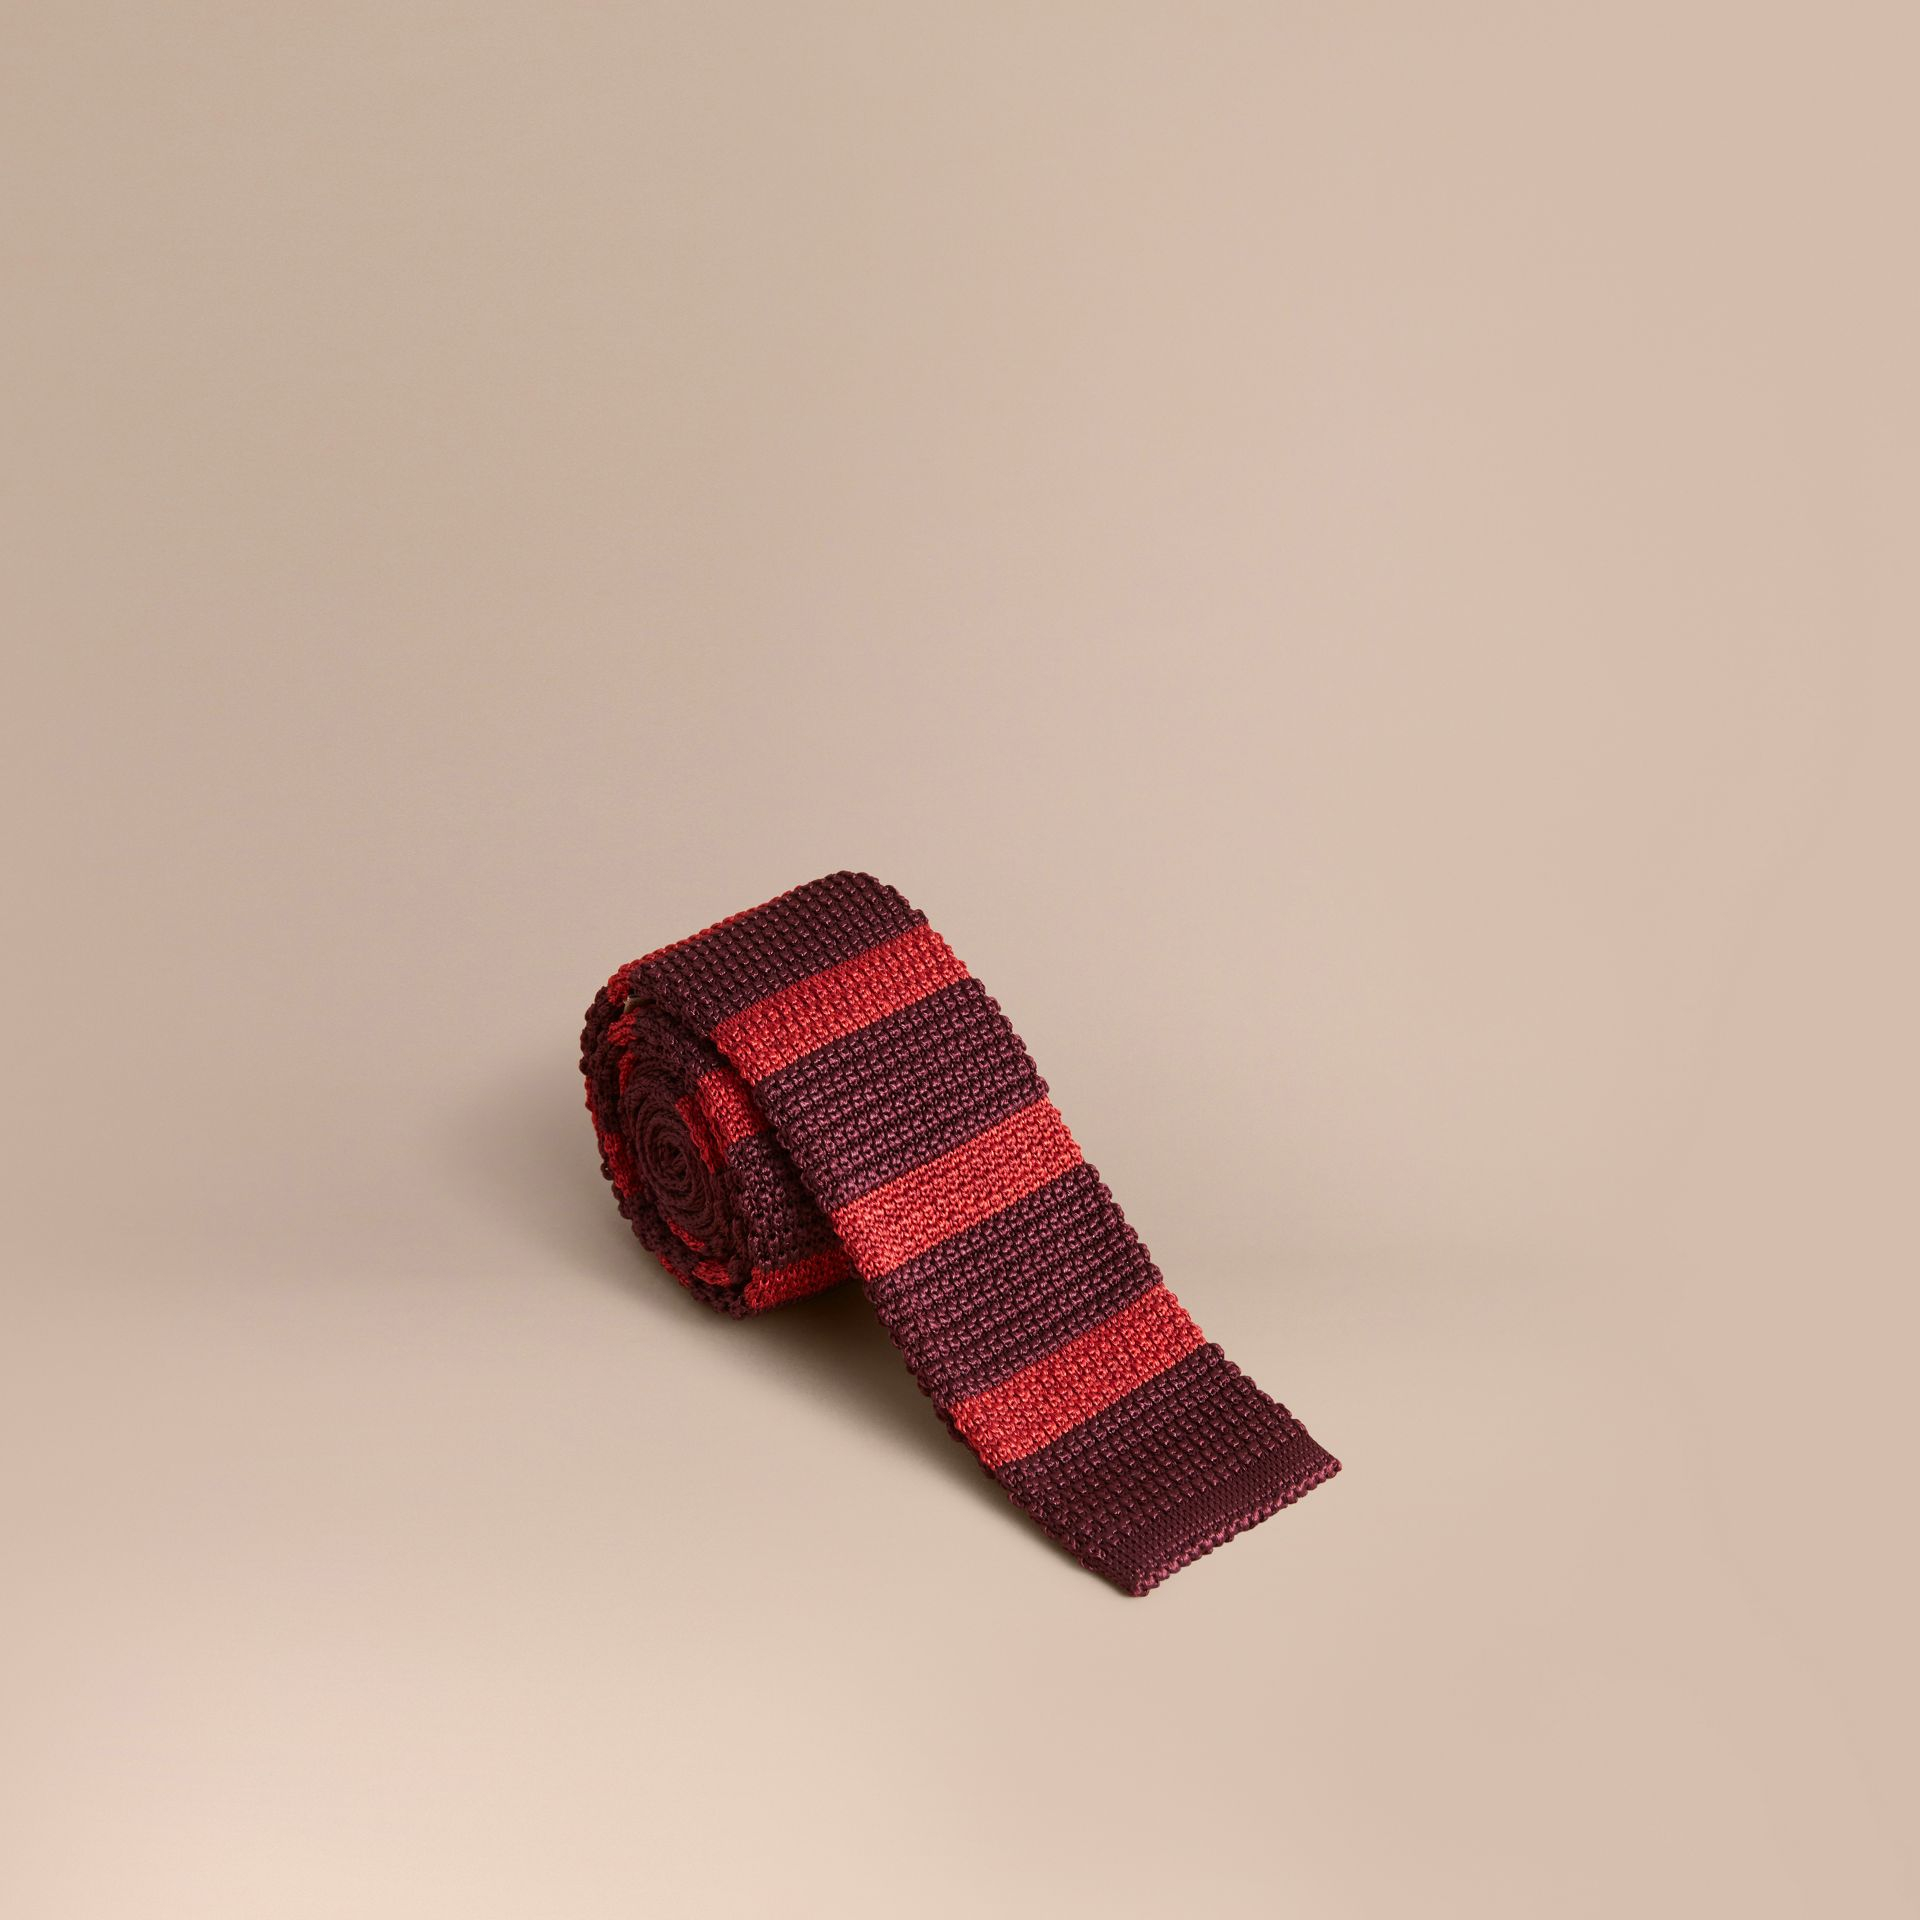 Slim Cut Two-tone Knitted Silk Tie in Burgundy - Men | Burberry Australia - gallery image 1